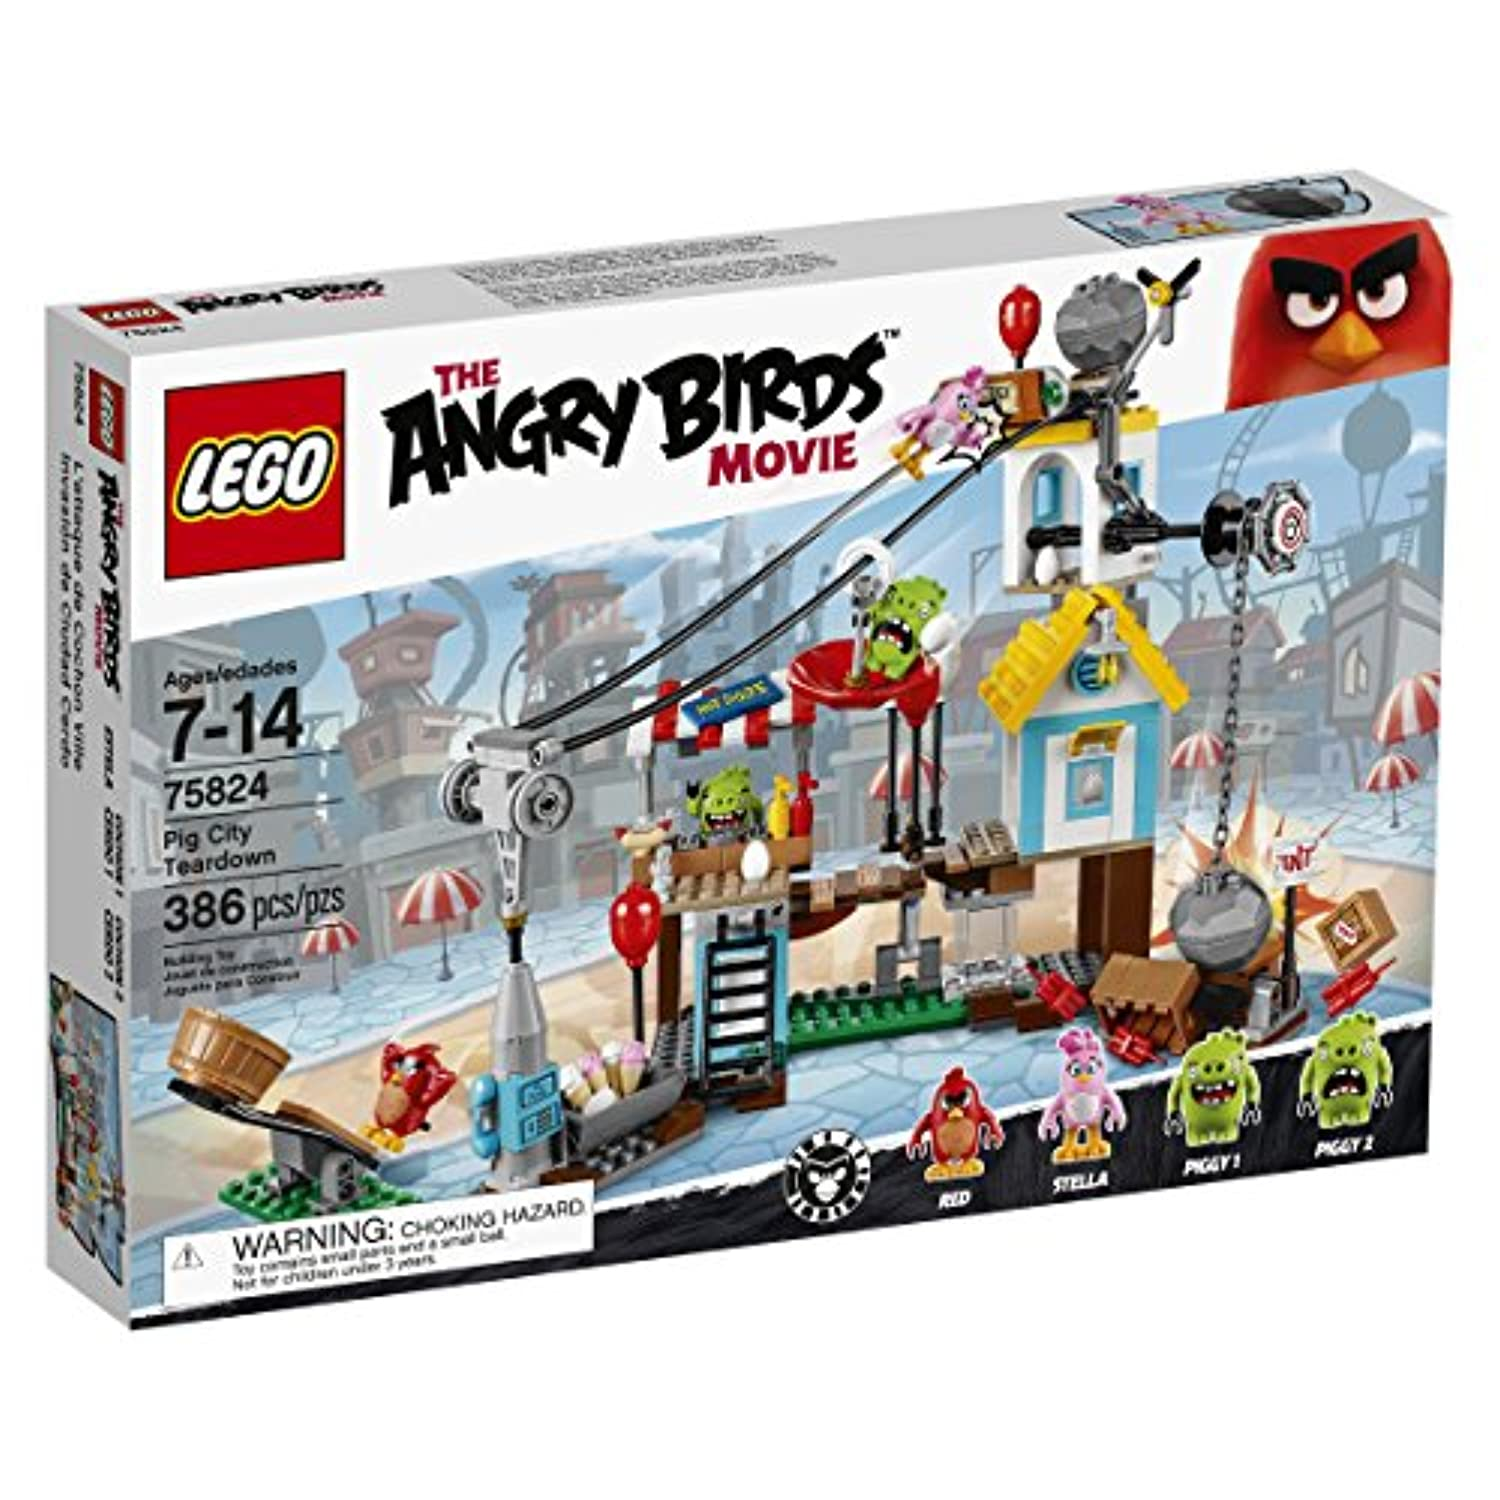 [レゴ]LEGO Angry Birds 75824 Pig City Teardown 6137896 [並行輸入品]